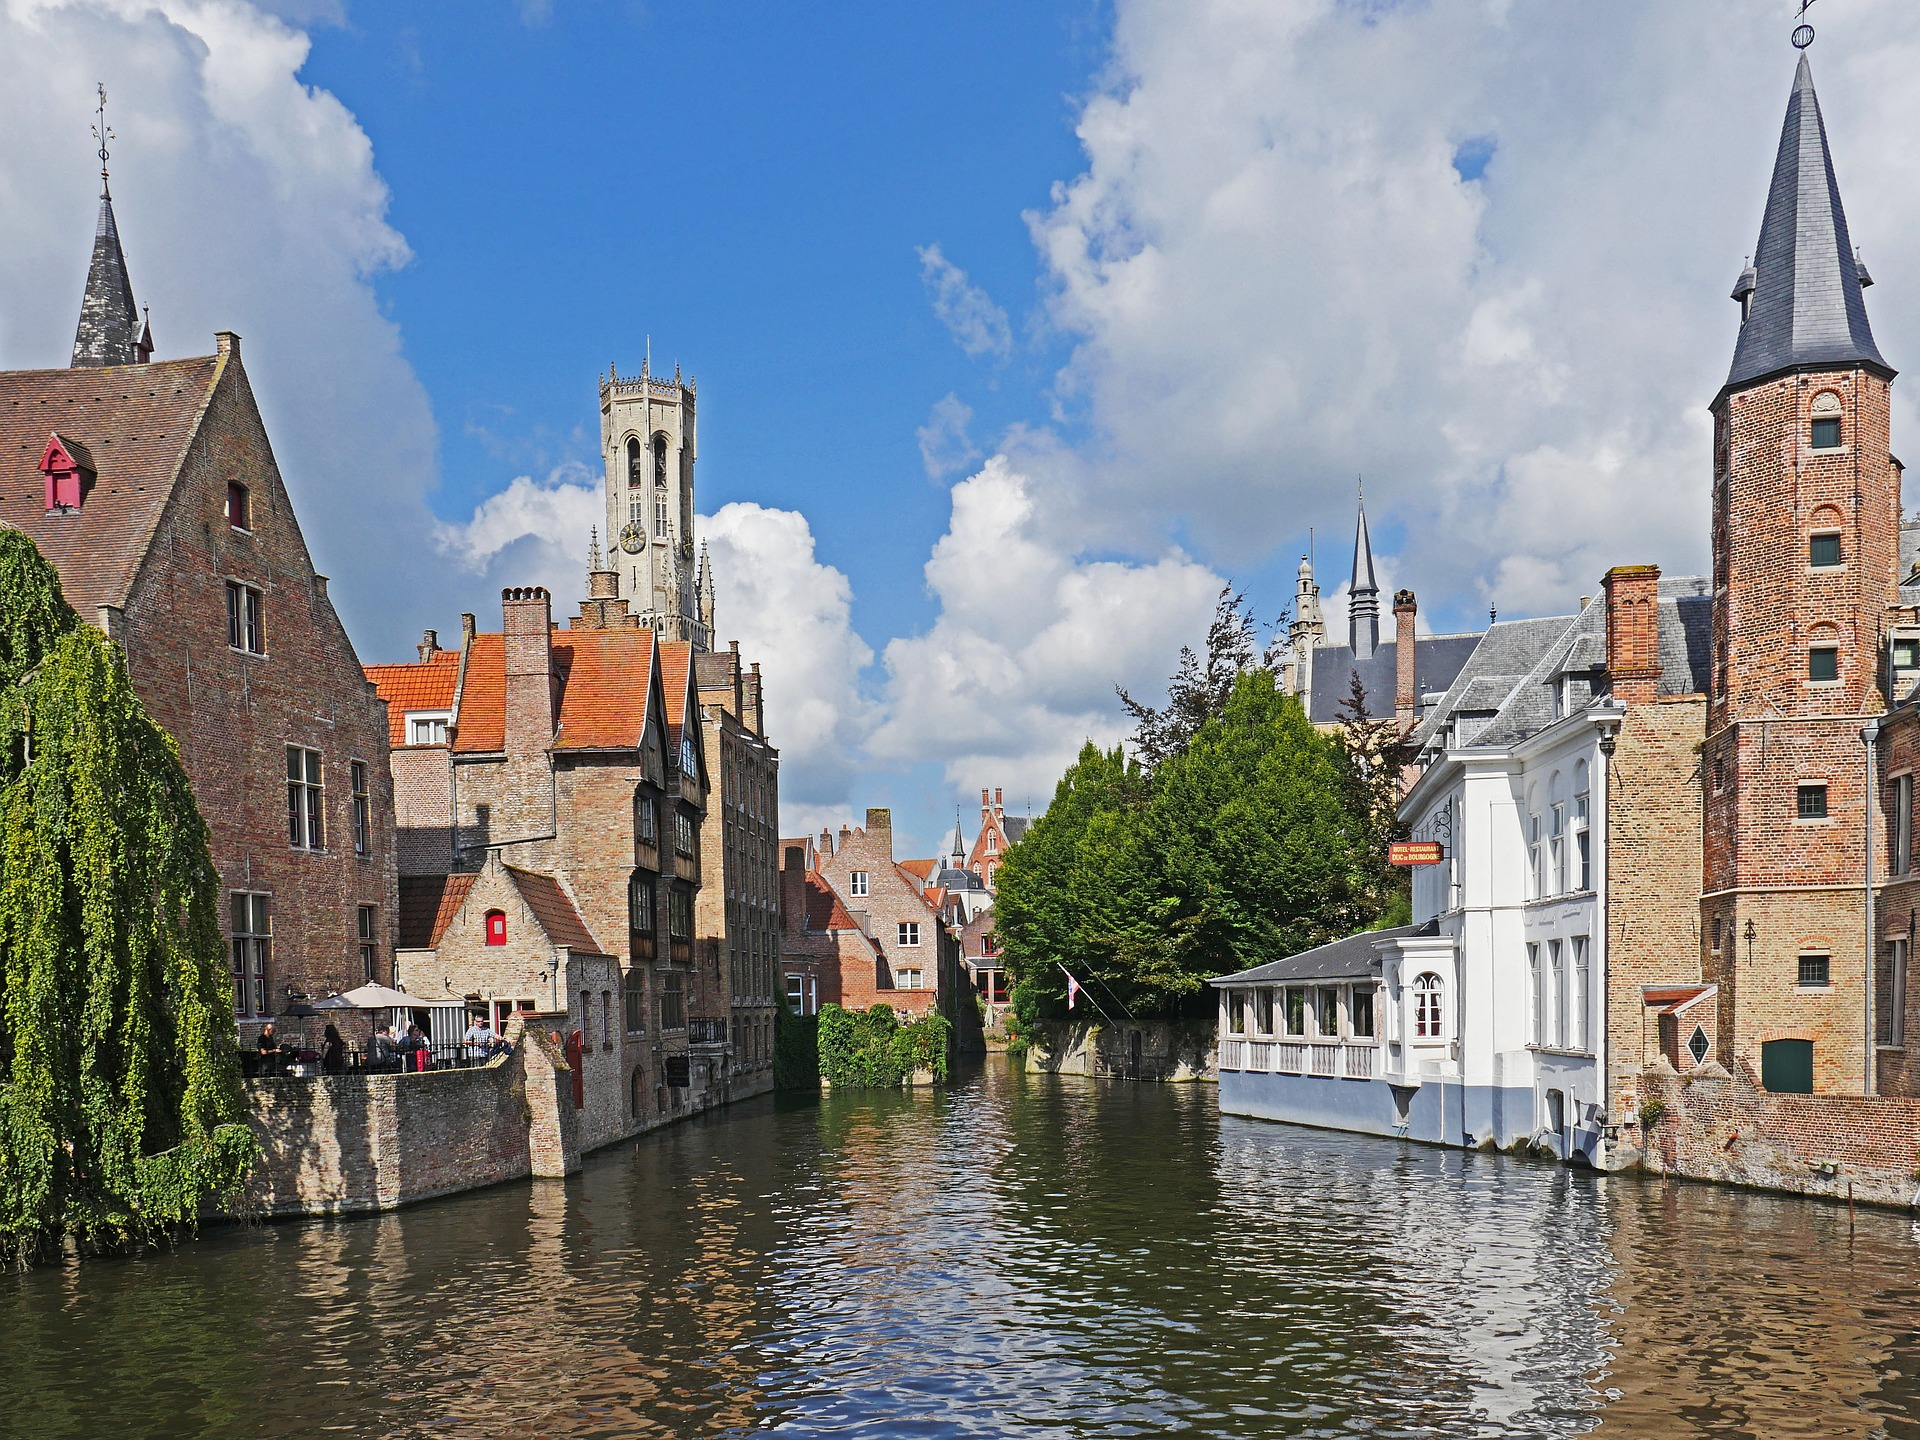 canal-in-bruges-2724438_1920